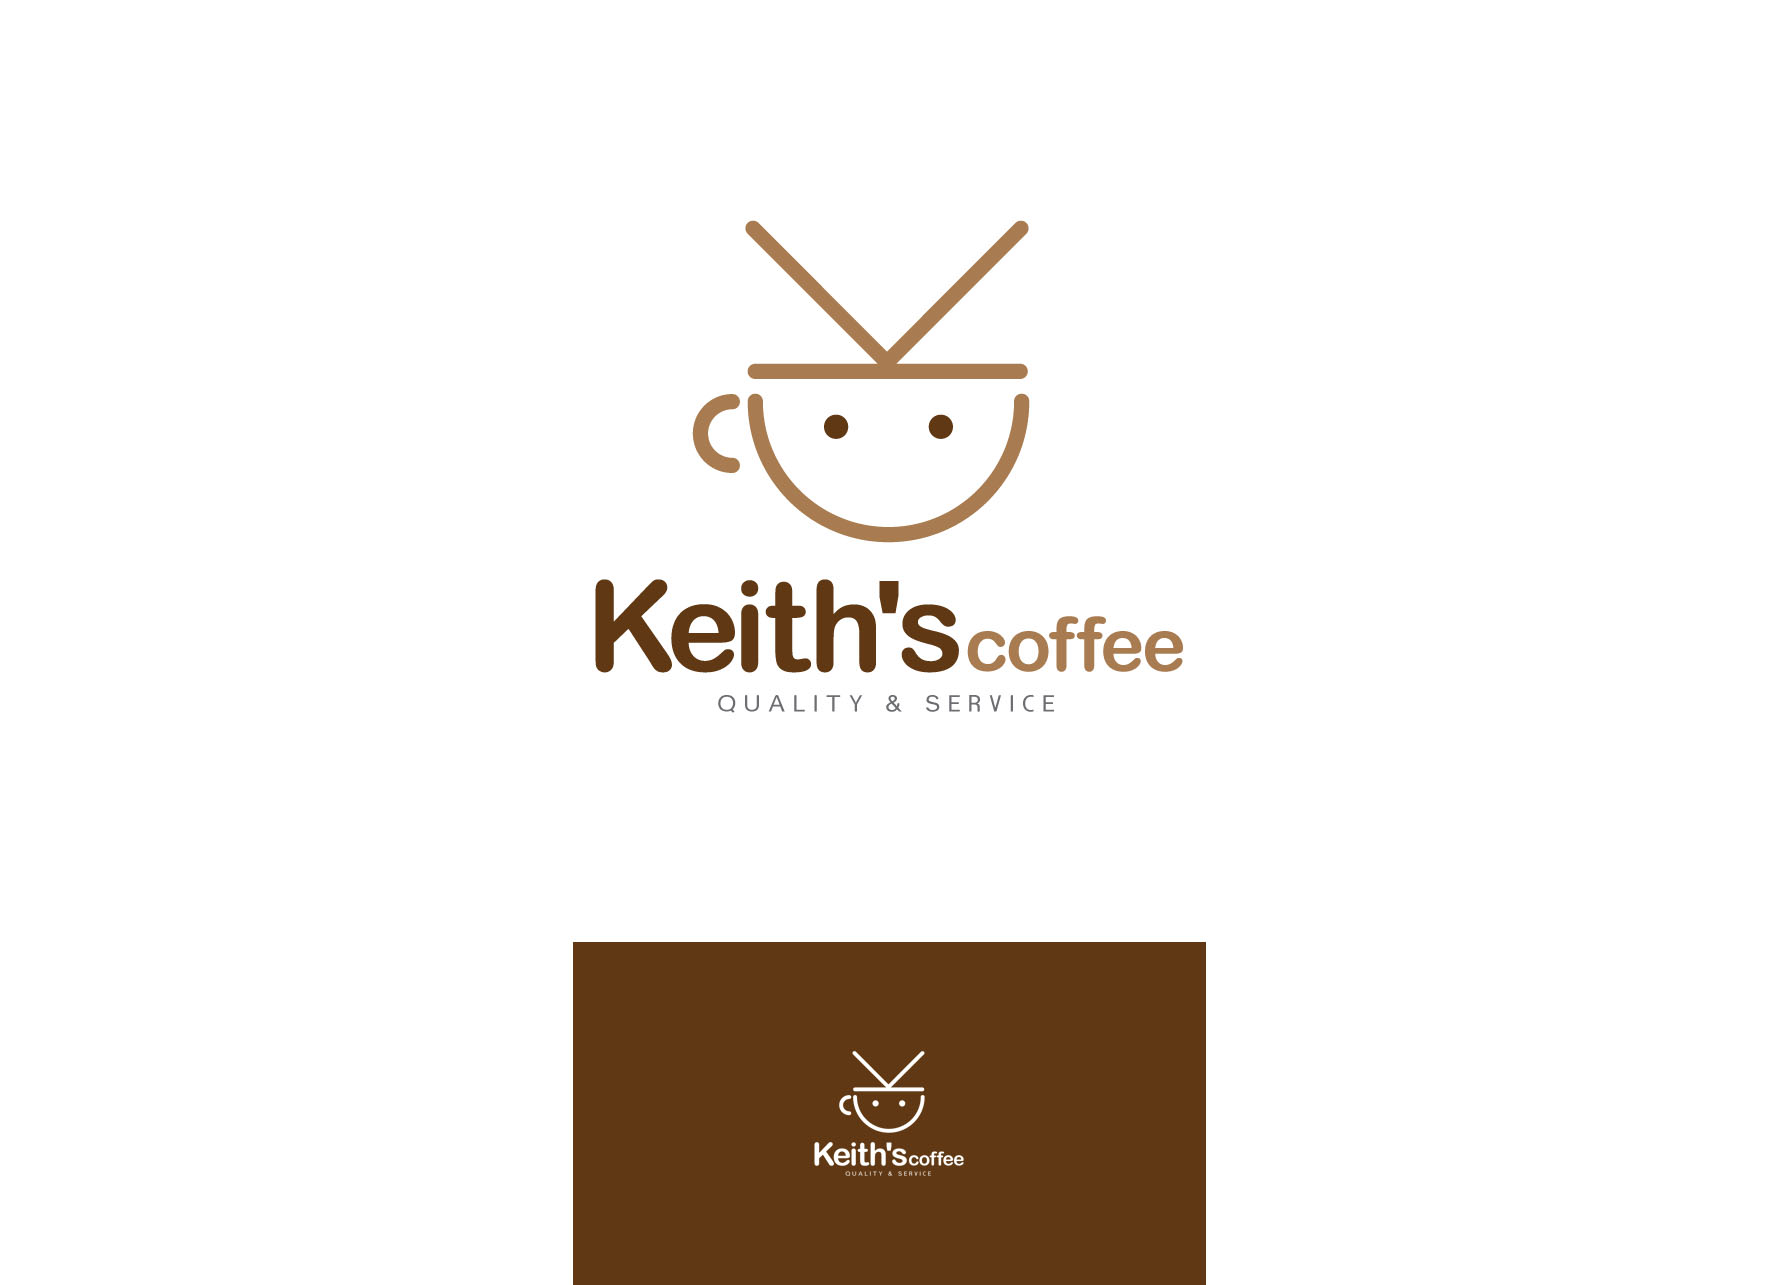 Logo Design by tanganpanas - Entry No. 60 in the Logo Design Contest Keef's coffee Logo Design.